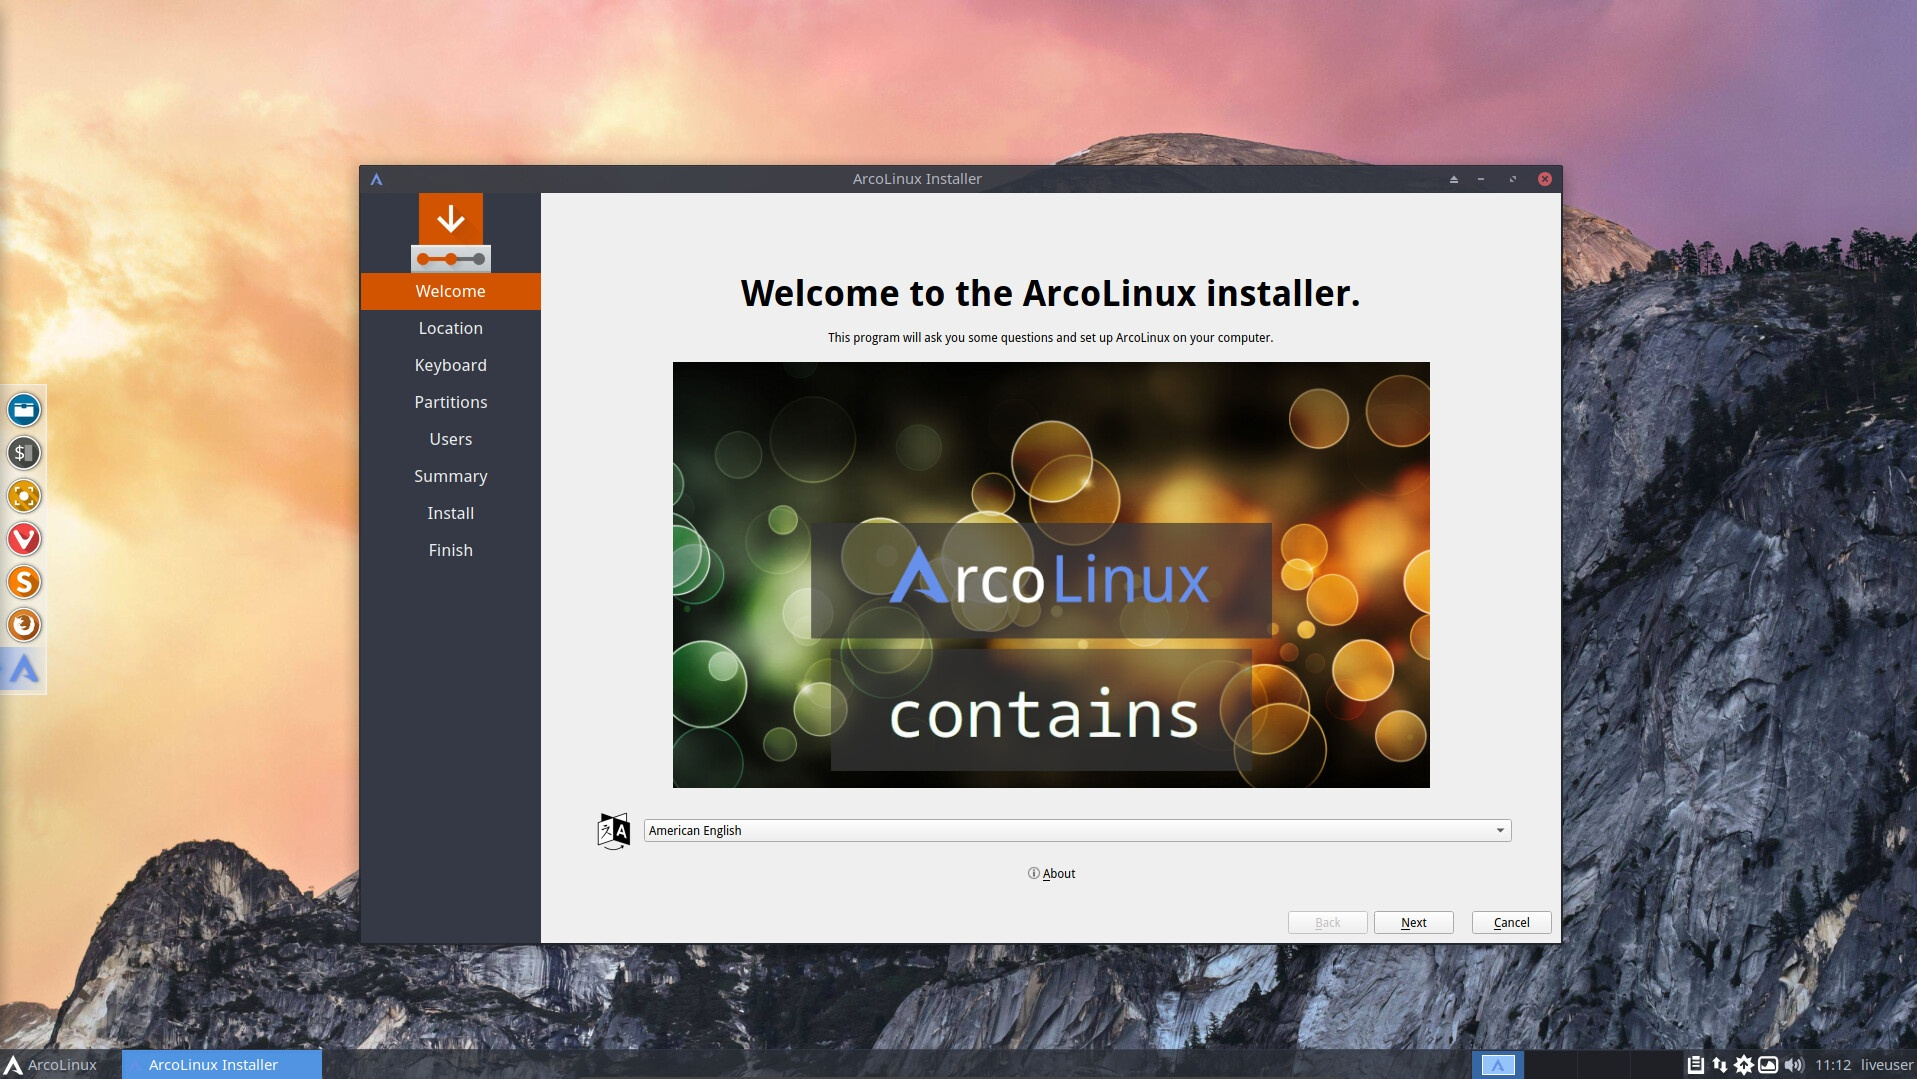 Calamares is a graphical installer for Linux – start learning in our Calamares series